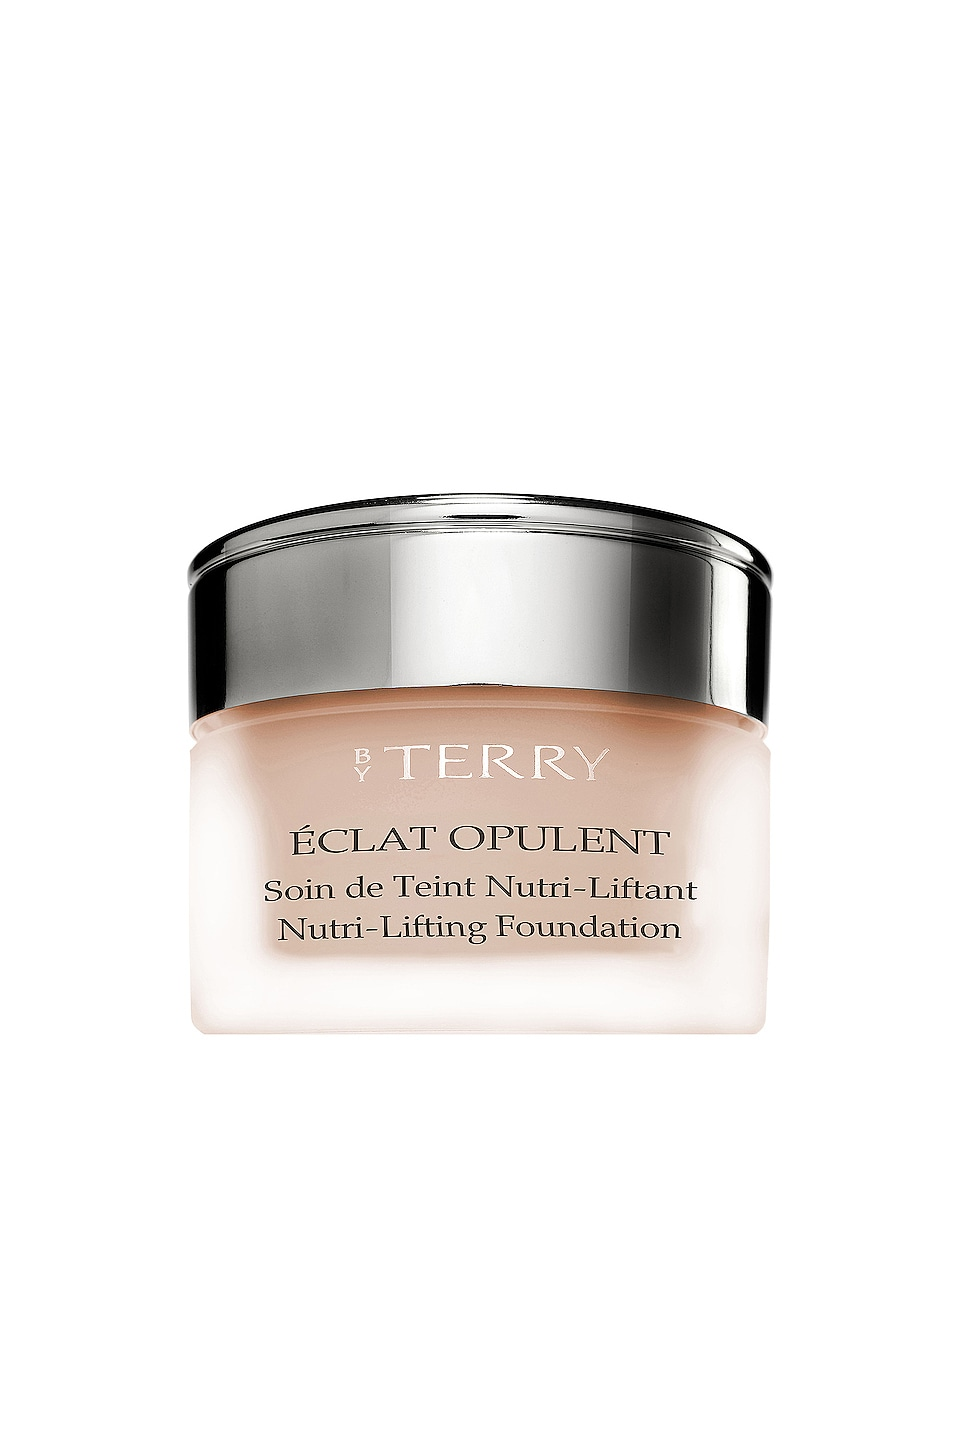 By Terry Eclat Opulent Nutri-Lifting Foundation in Natural Radiance